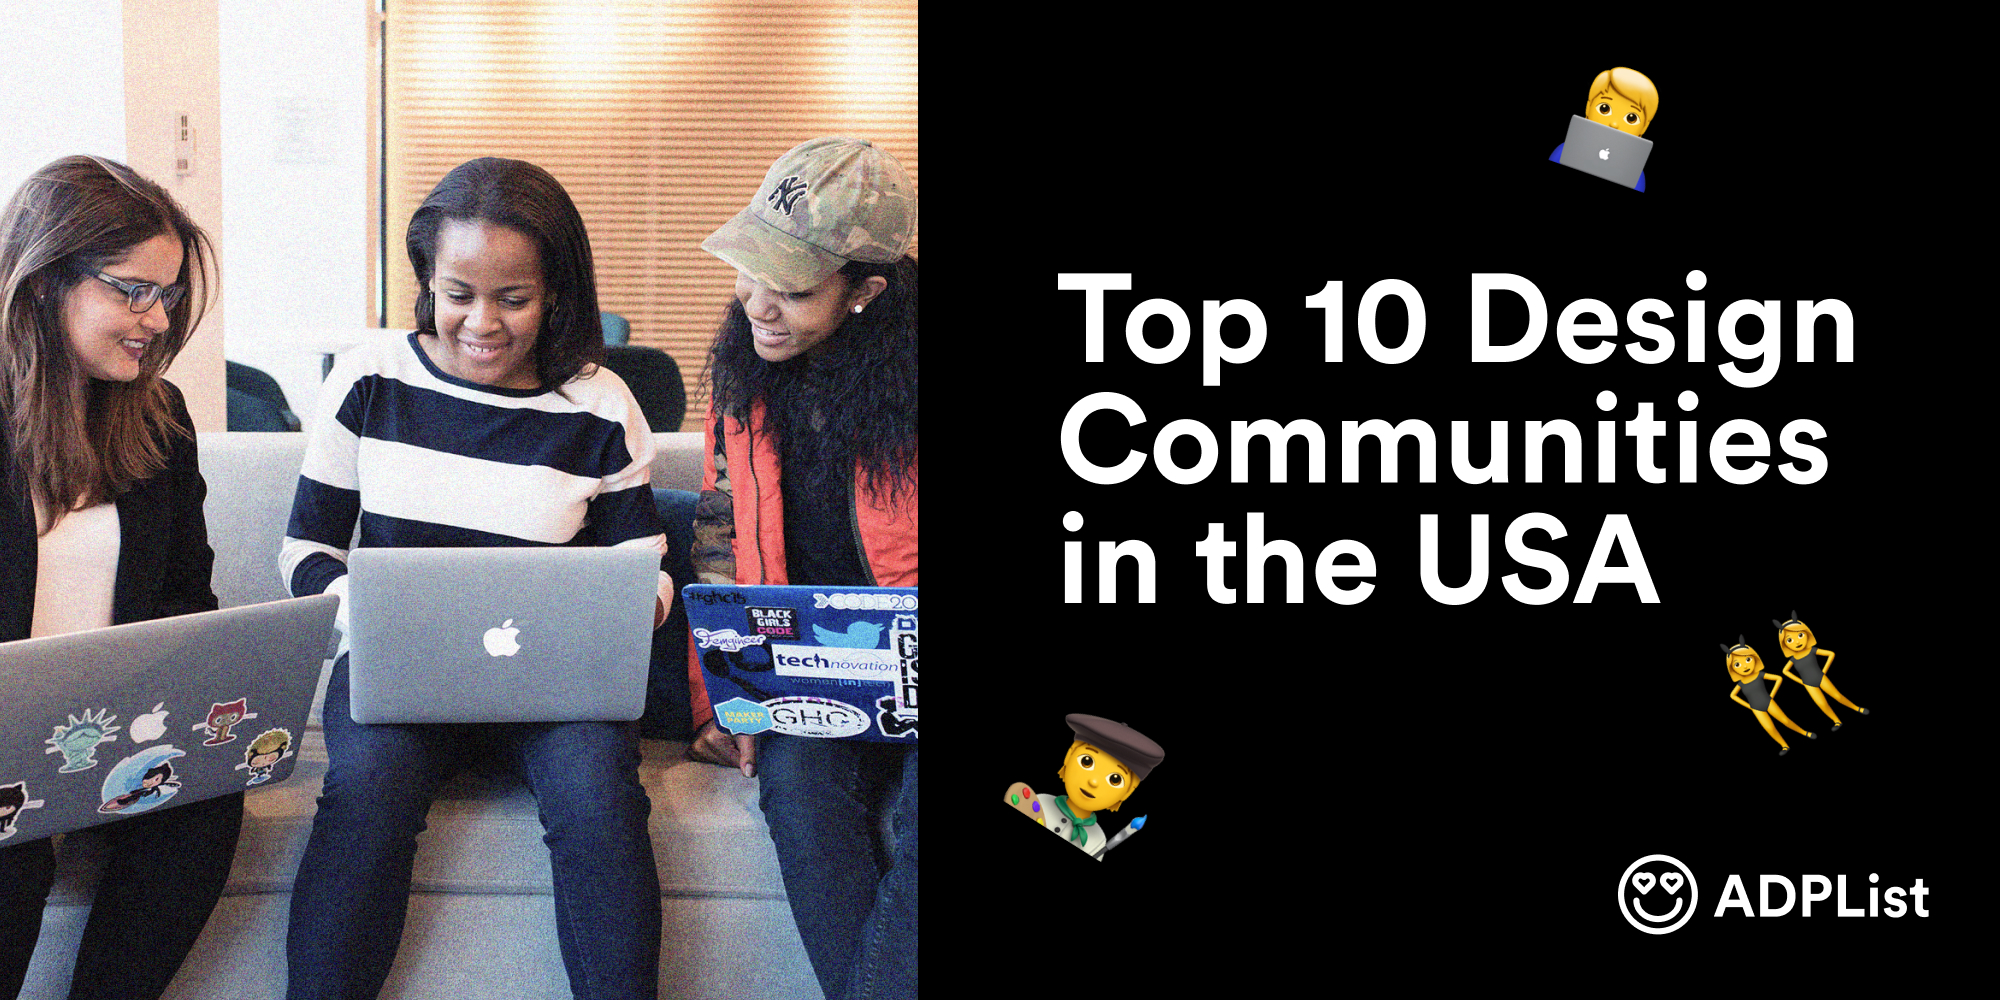 Top 10 Design Communities in the USA